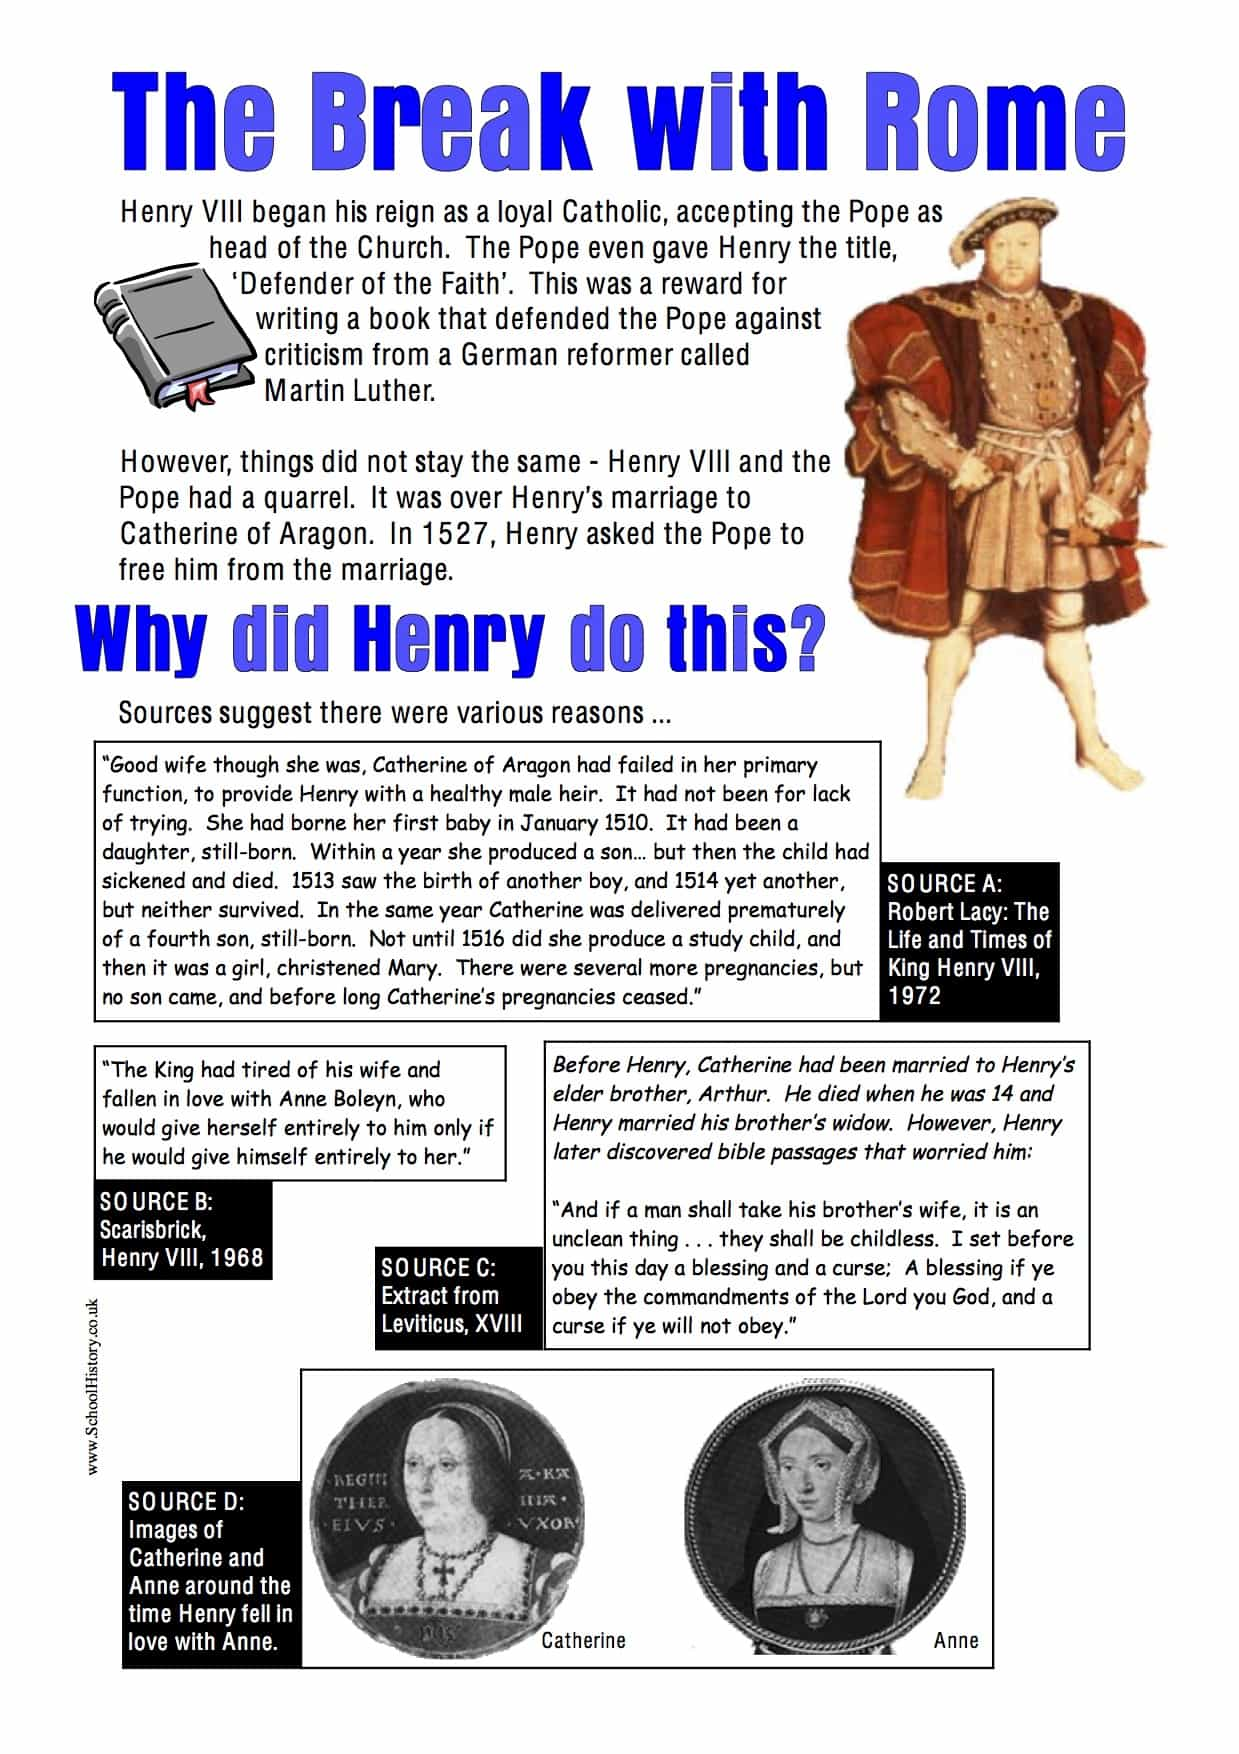 The Break With Rome Facts Worksheet